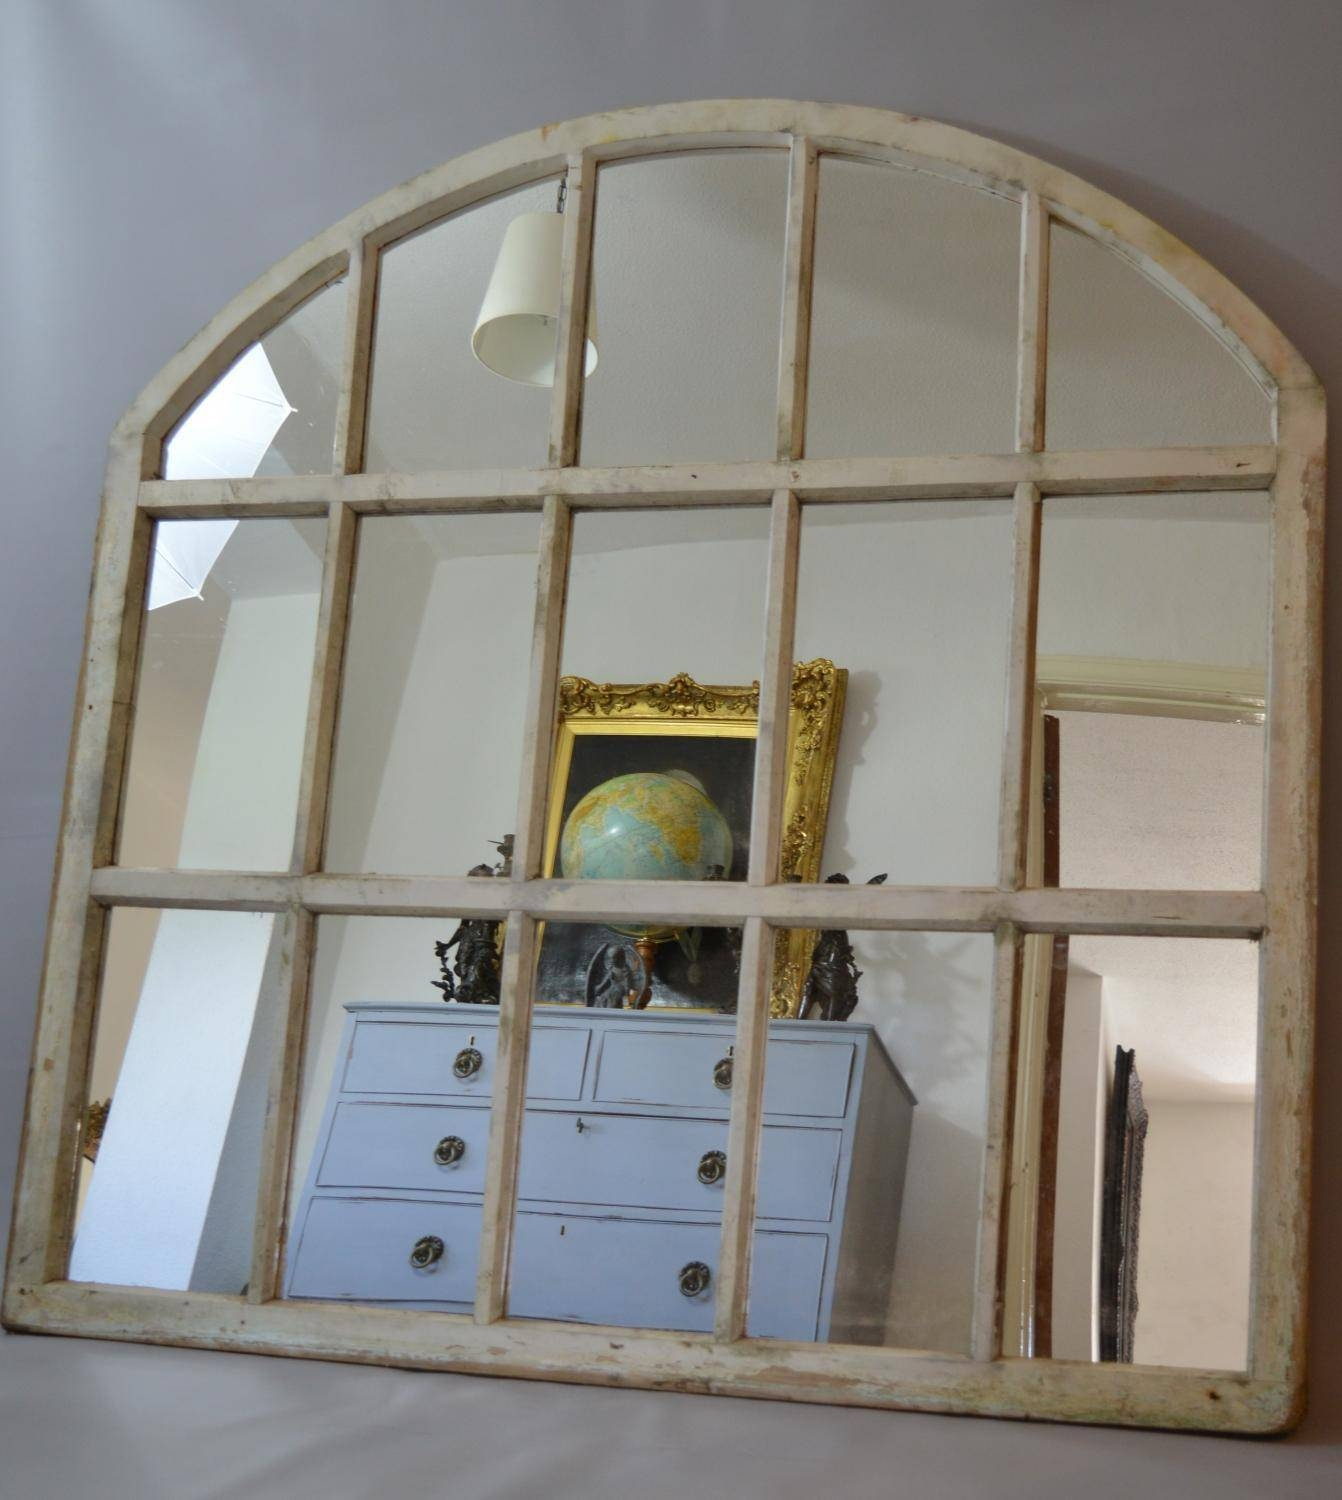 Large Arched Window Frame Mirror In Mirrors with Large Arched Window Mirrors (Image 9 of 15)